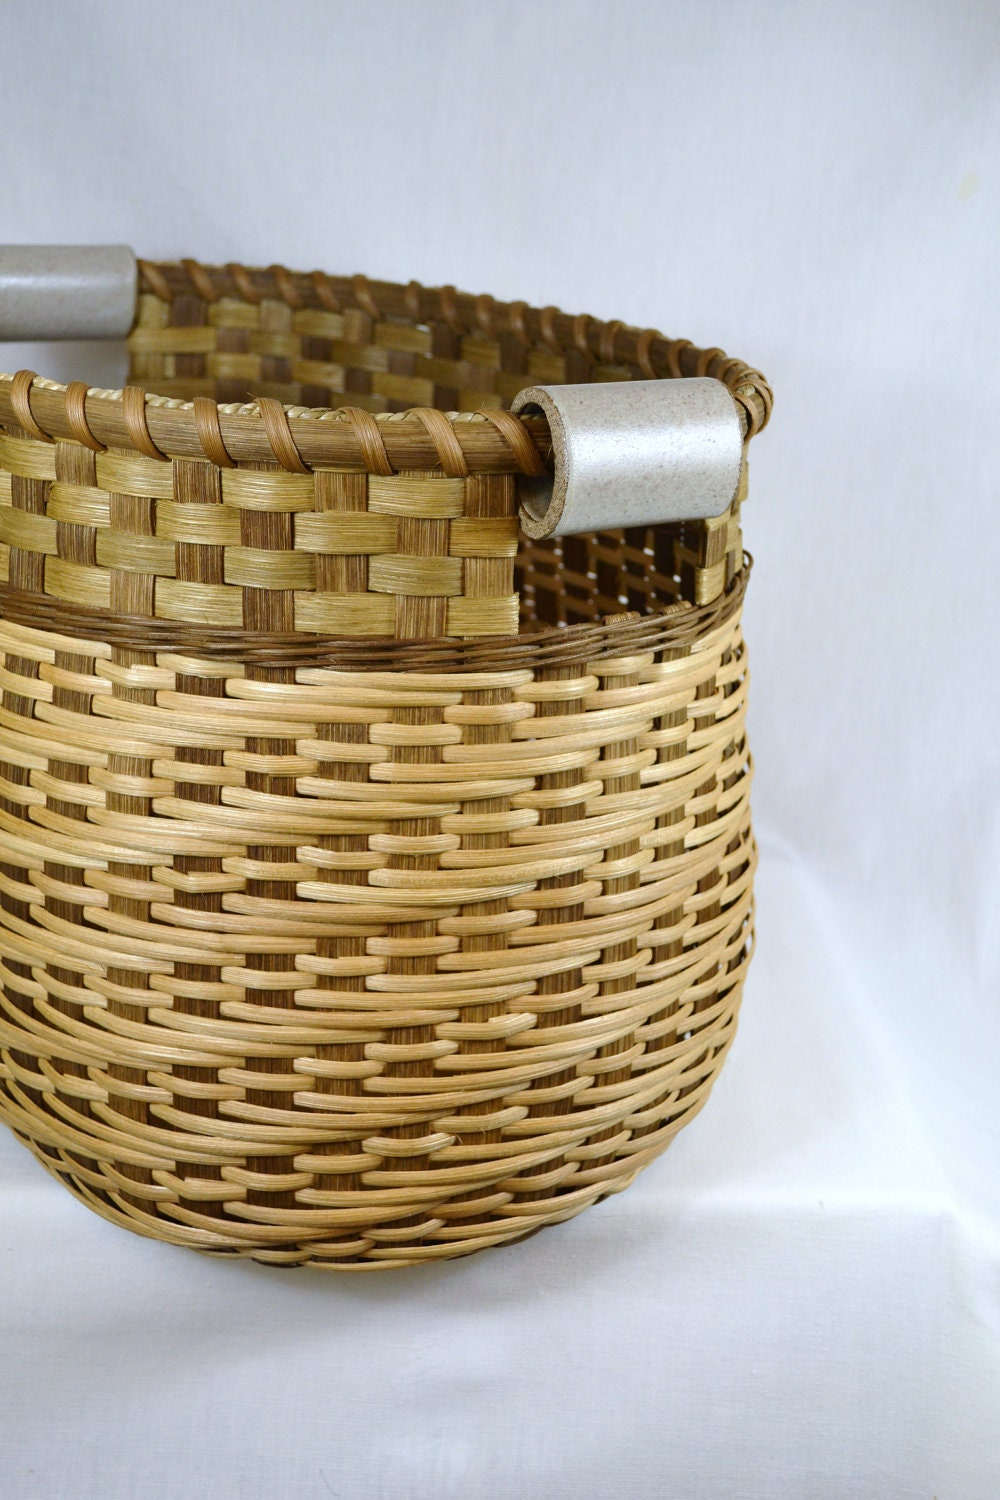 How To Weave A Basket Out Of Reeds : Large reed or wicker storage basket for by brightexpectations